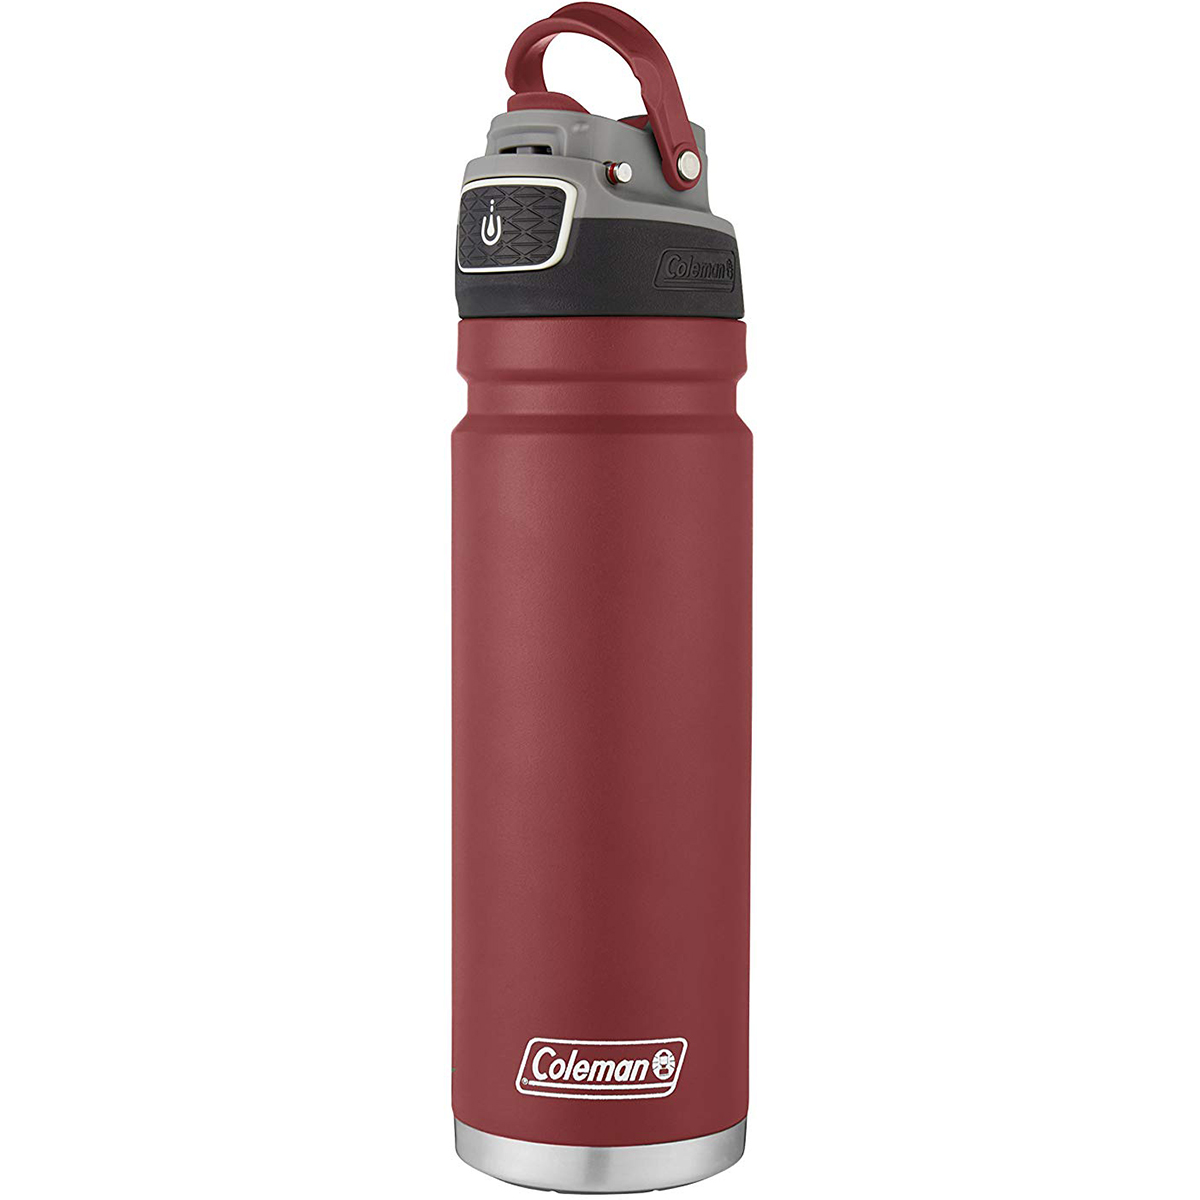 Coleman-24-oz-Free-Flow-Autoseal-Insulated-Stainless-Steel-Water-Bottle thumbnail 13